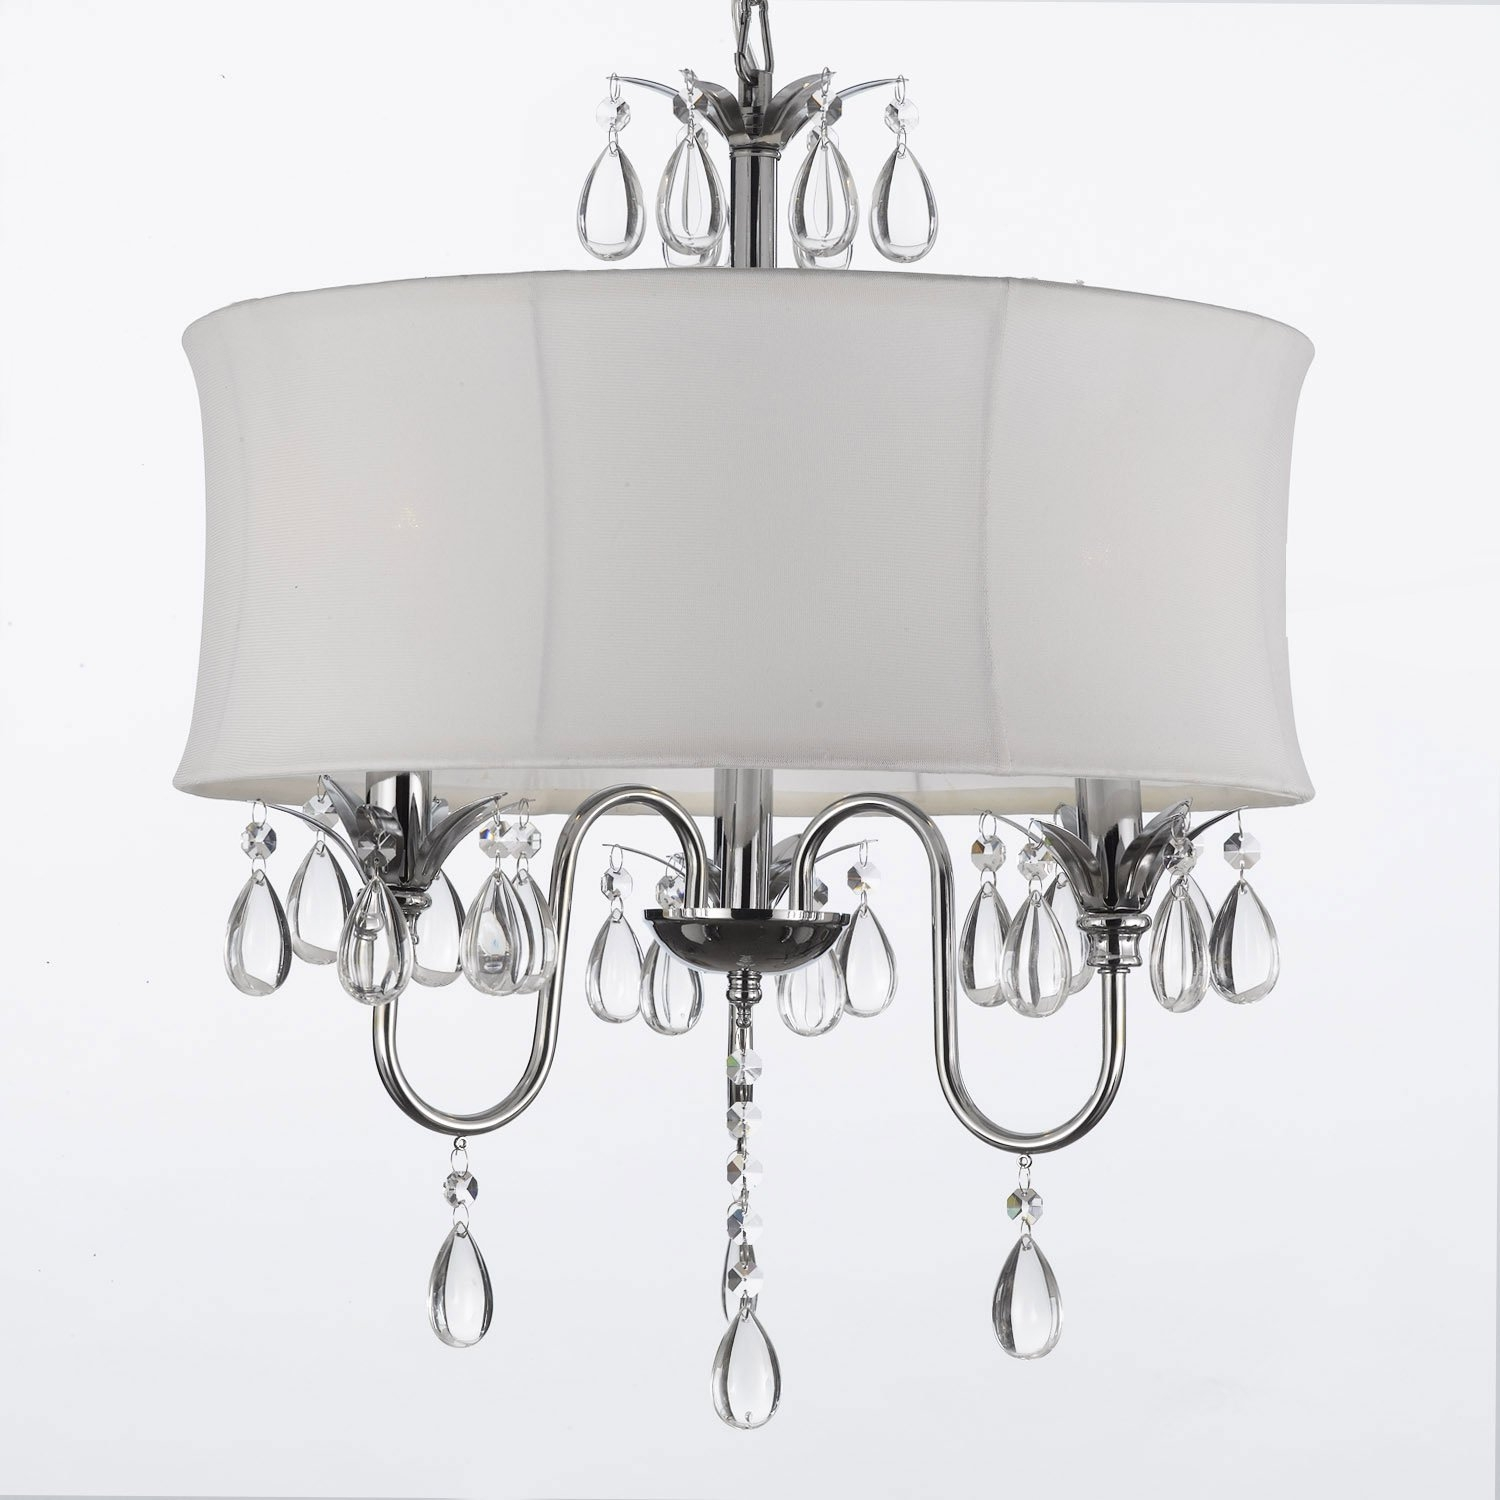 Go A7 White8343 White Drum Shade Crystal Ceiling Chandelier Regarding Small Chandelier Lamp Shades (Image 13 of 25)